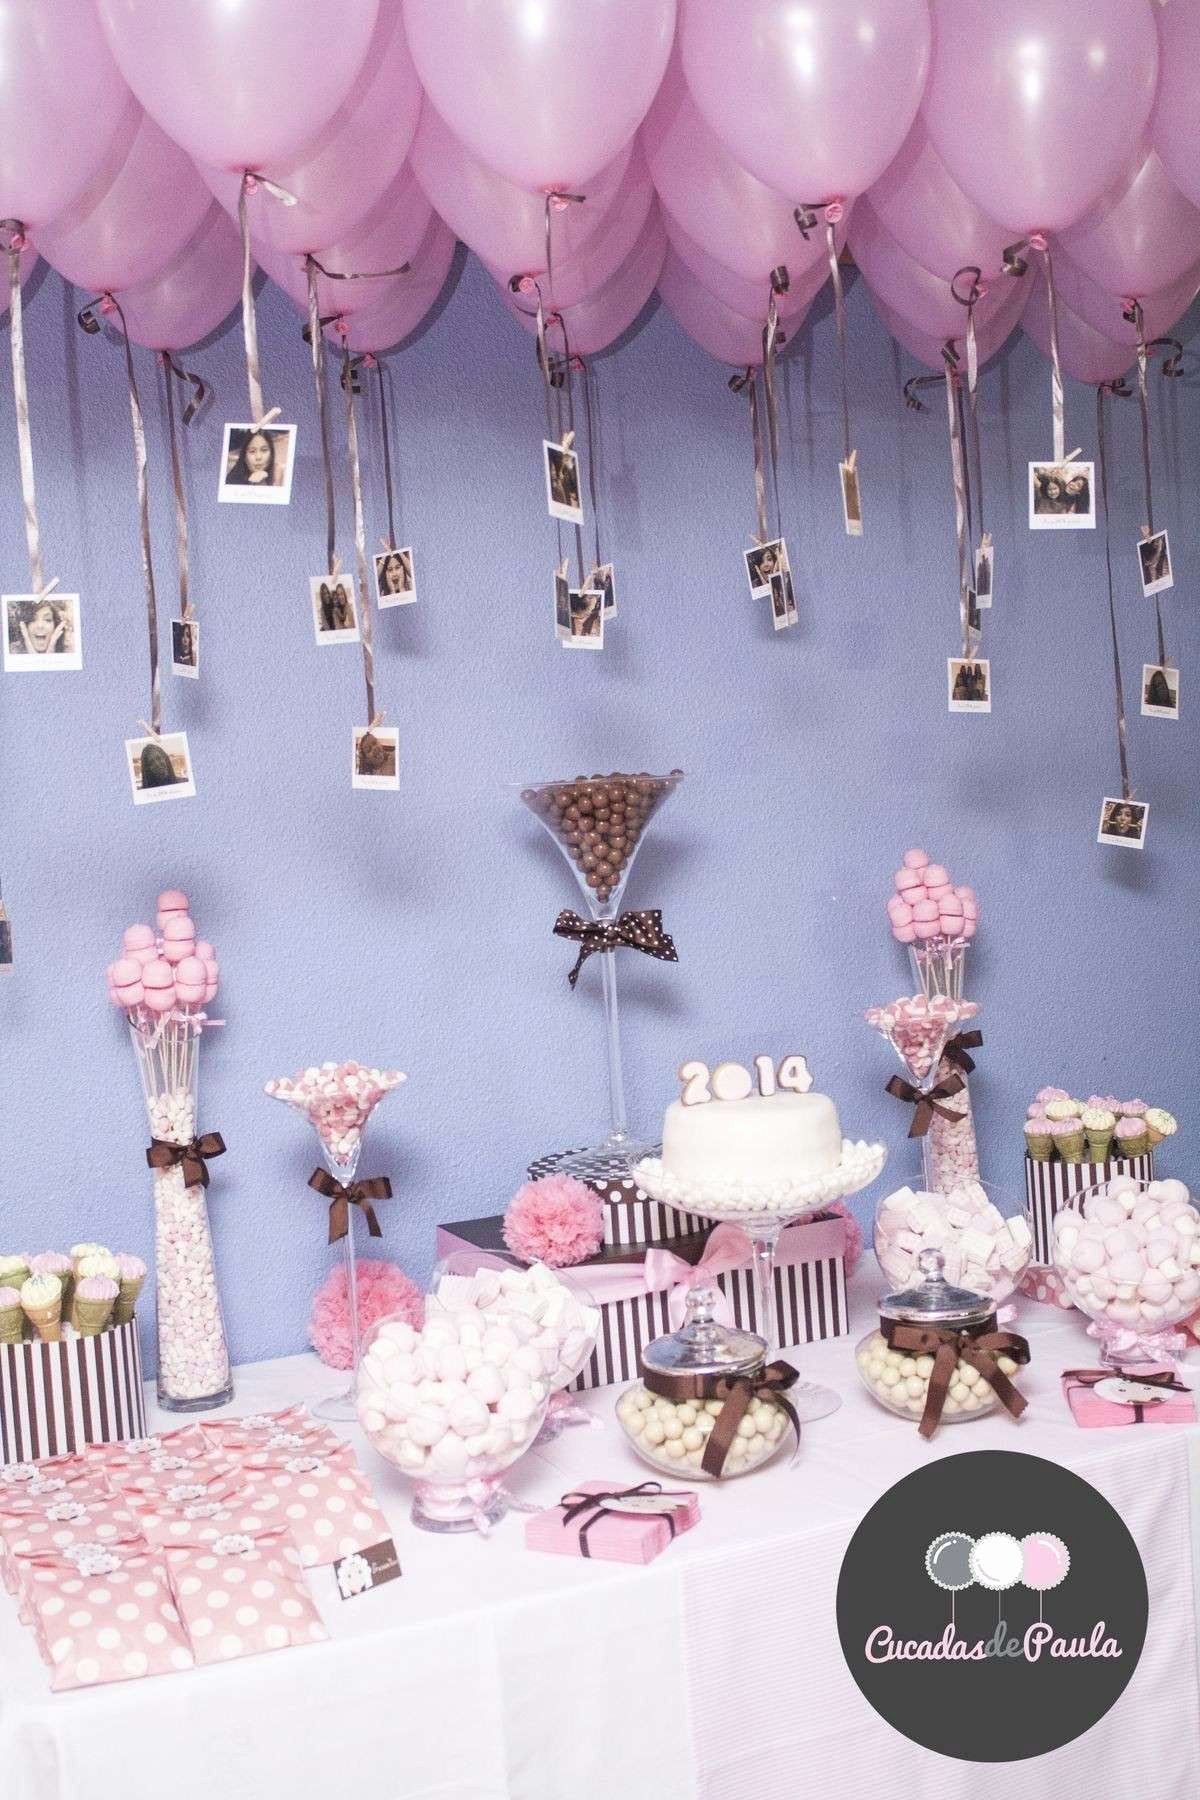 1st Birthday Decoration Ideas at Home for Boy New Inspirational Decoration Ideas 1st Birthday Party